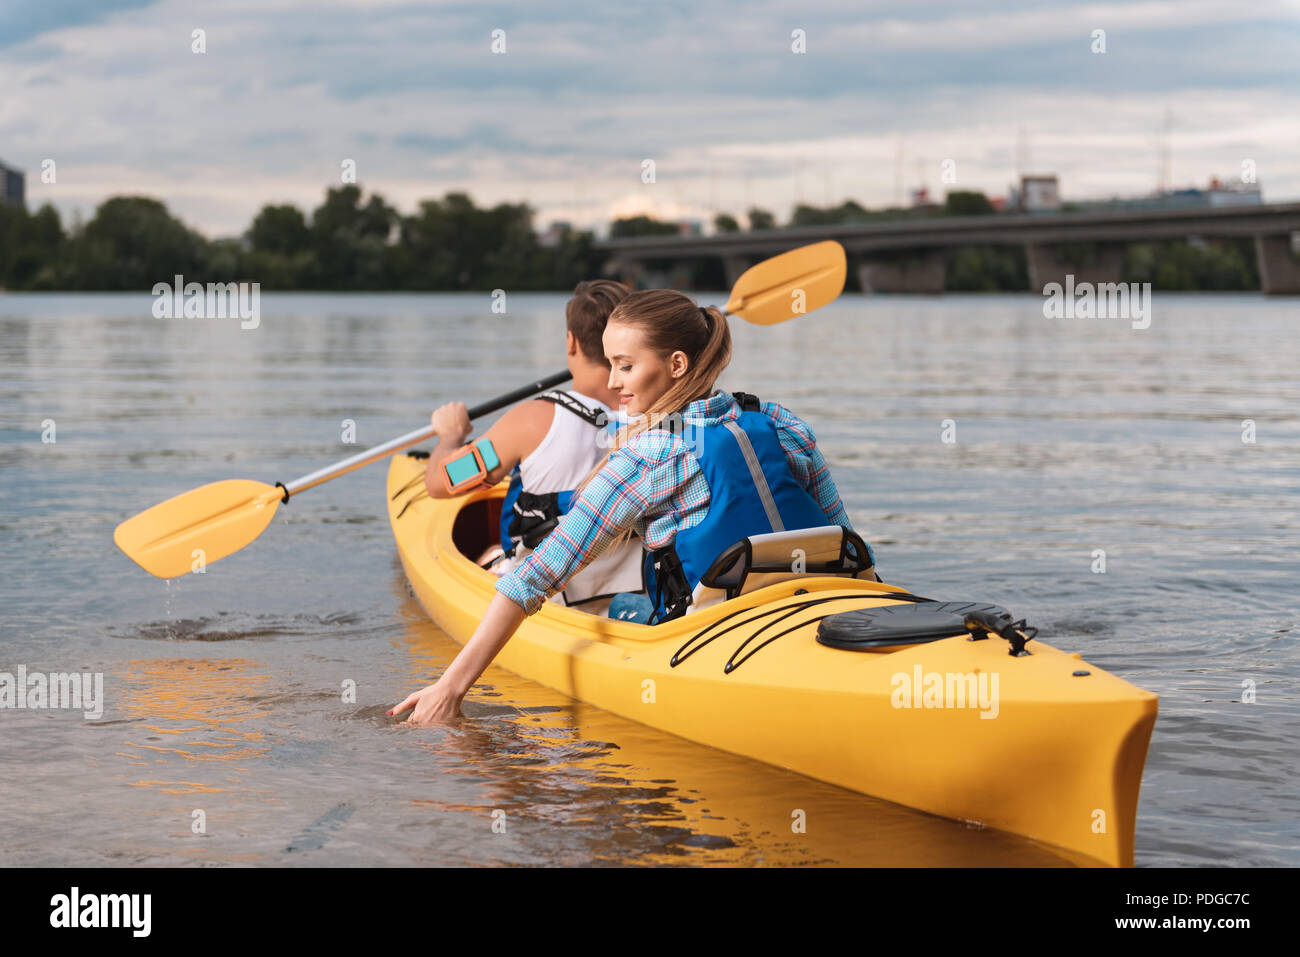 Athletic woman wearing life vest sitting in yellow canoe with trainer - Stock Image